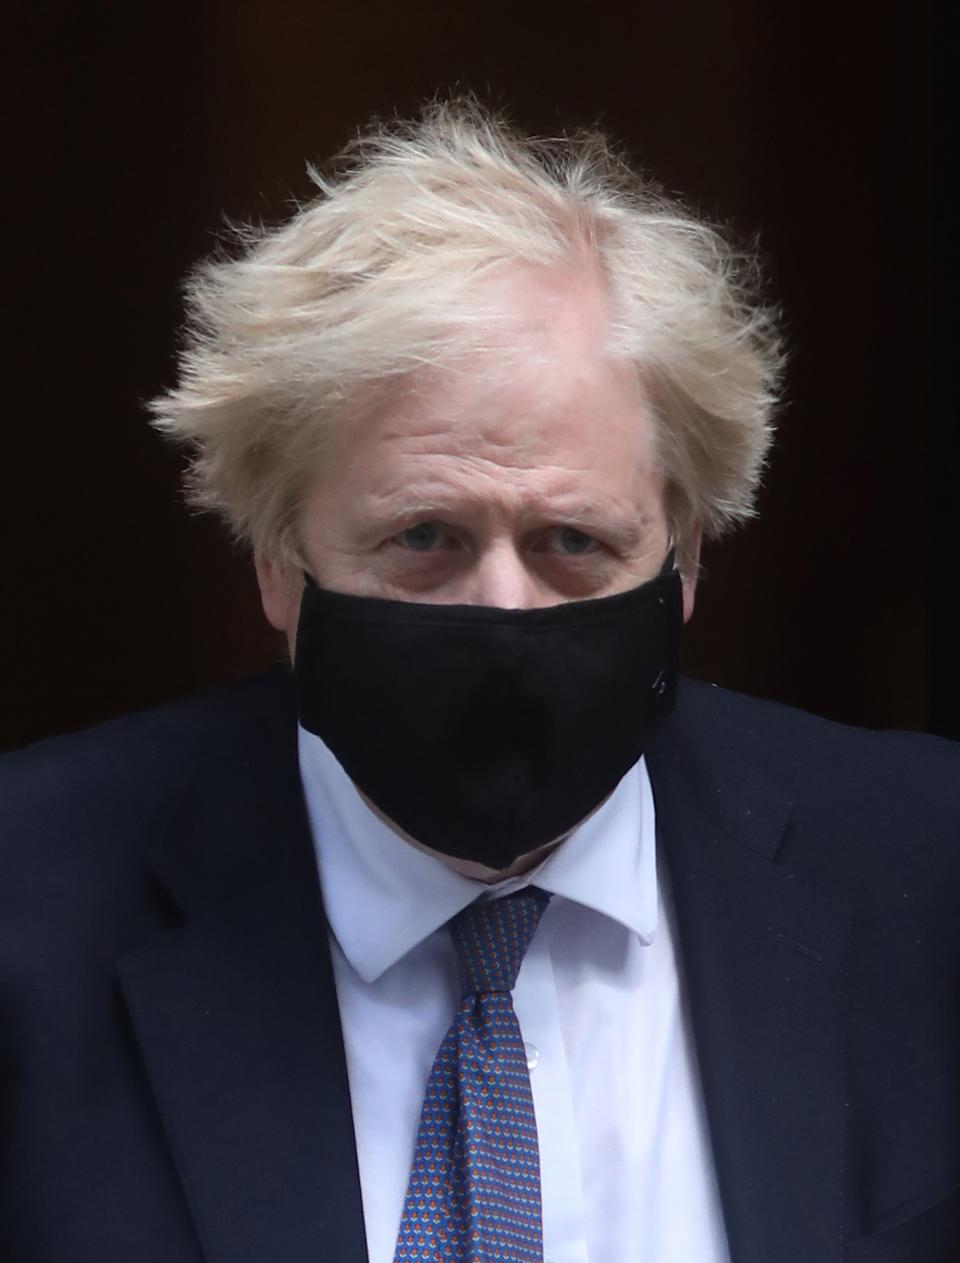 Prime Minister Boris Johnson leaves 10 Downing Street to attend Prime Minister's Questions at the Houses of Parliament, London. Picture date: Wednesday May 19, 2021. (Photo by Luciana Guerra/PA Images via Getty Images)